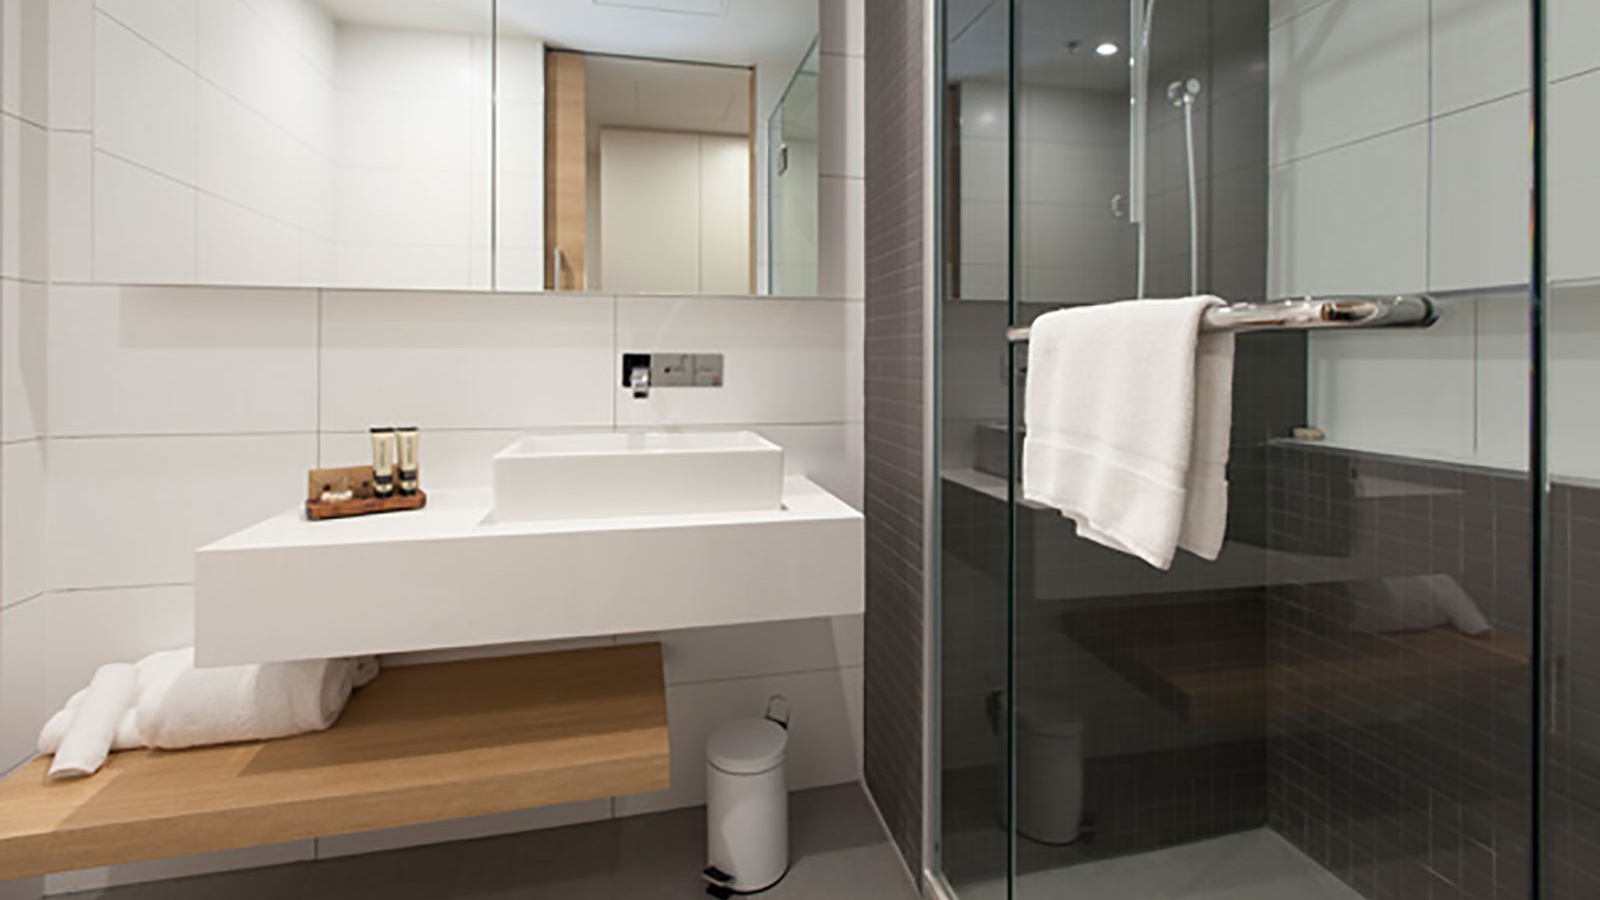 Bathroom of Family Suite at Jasper Hotel Melbourne